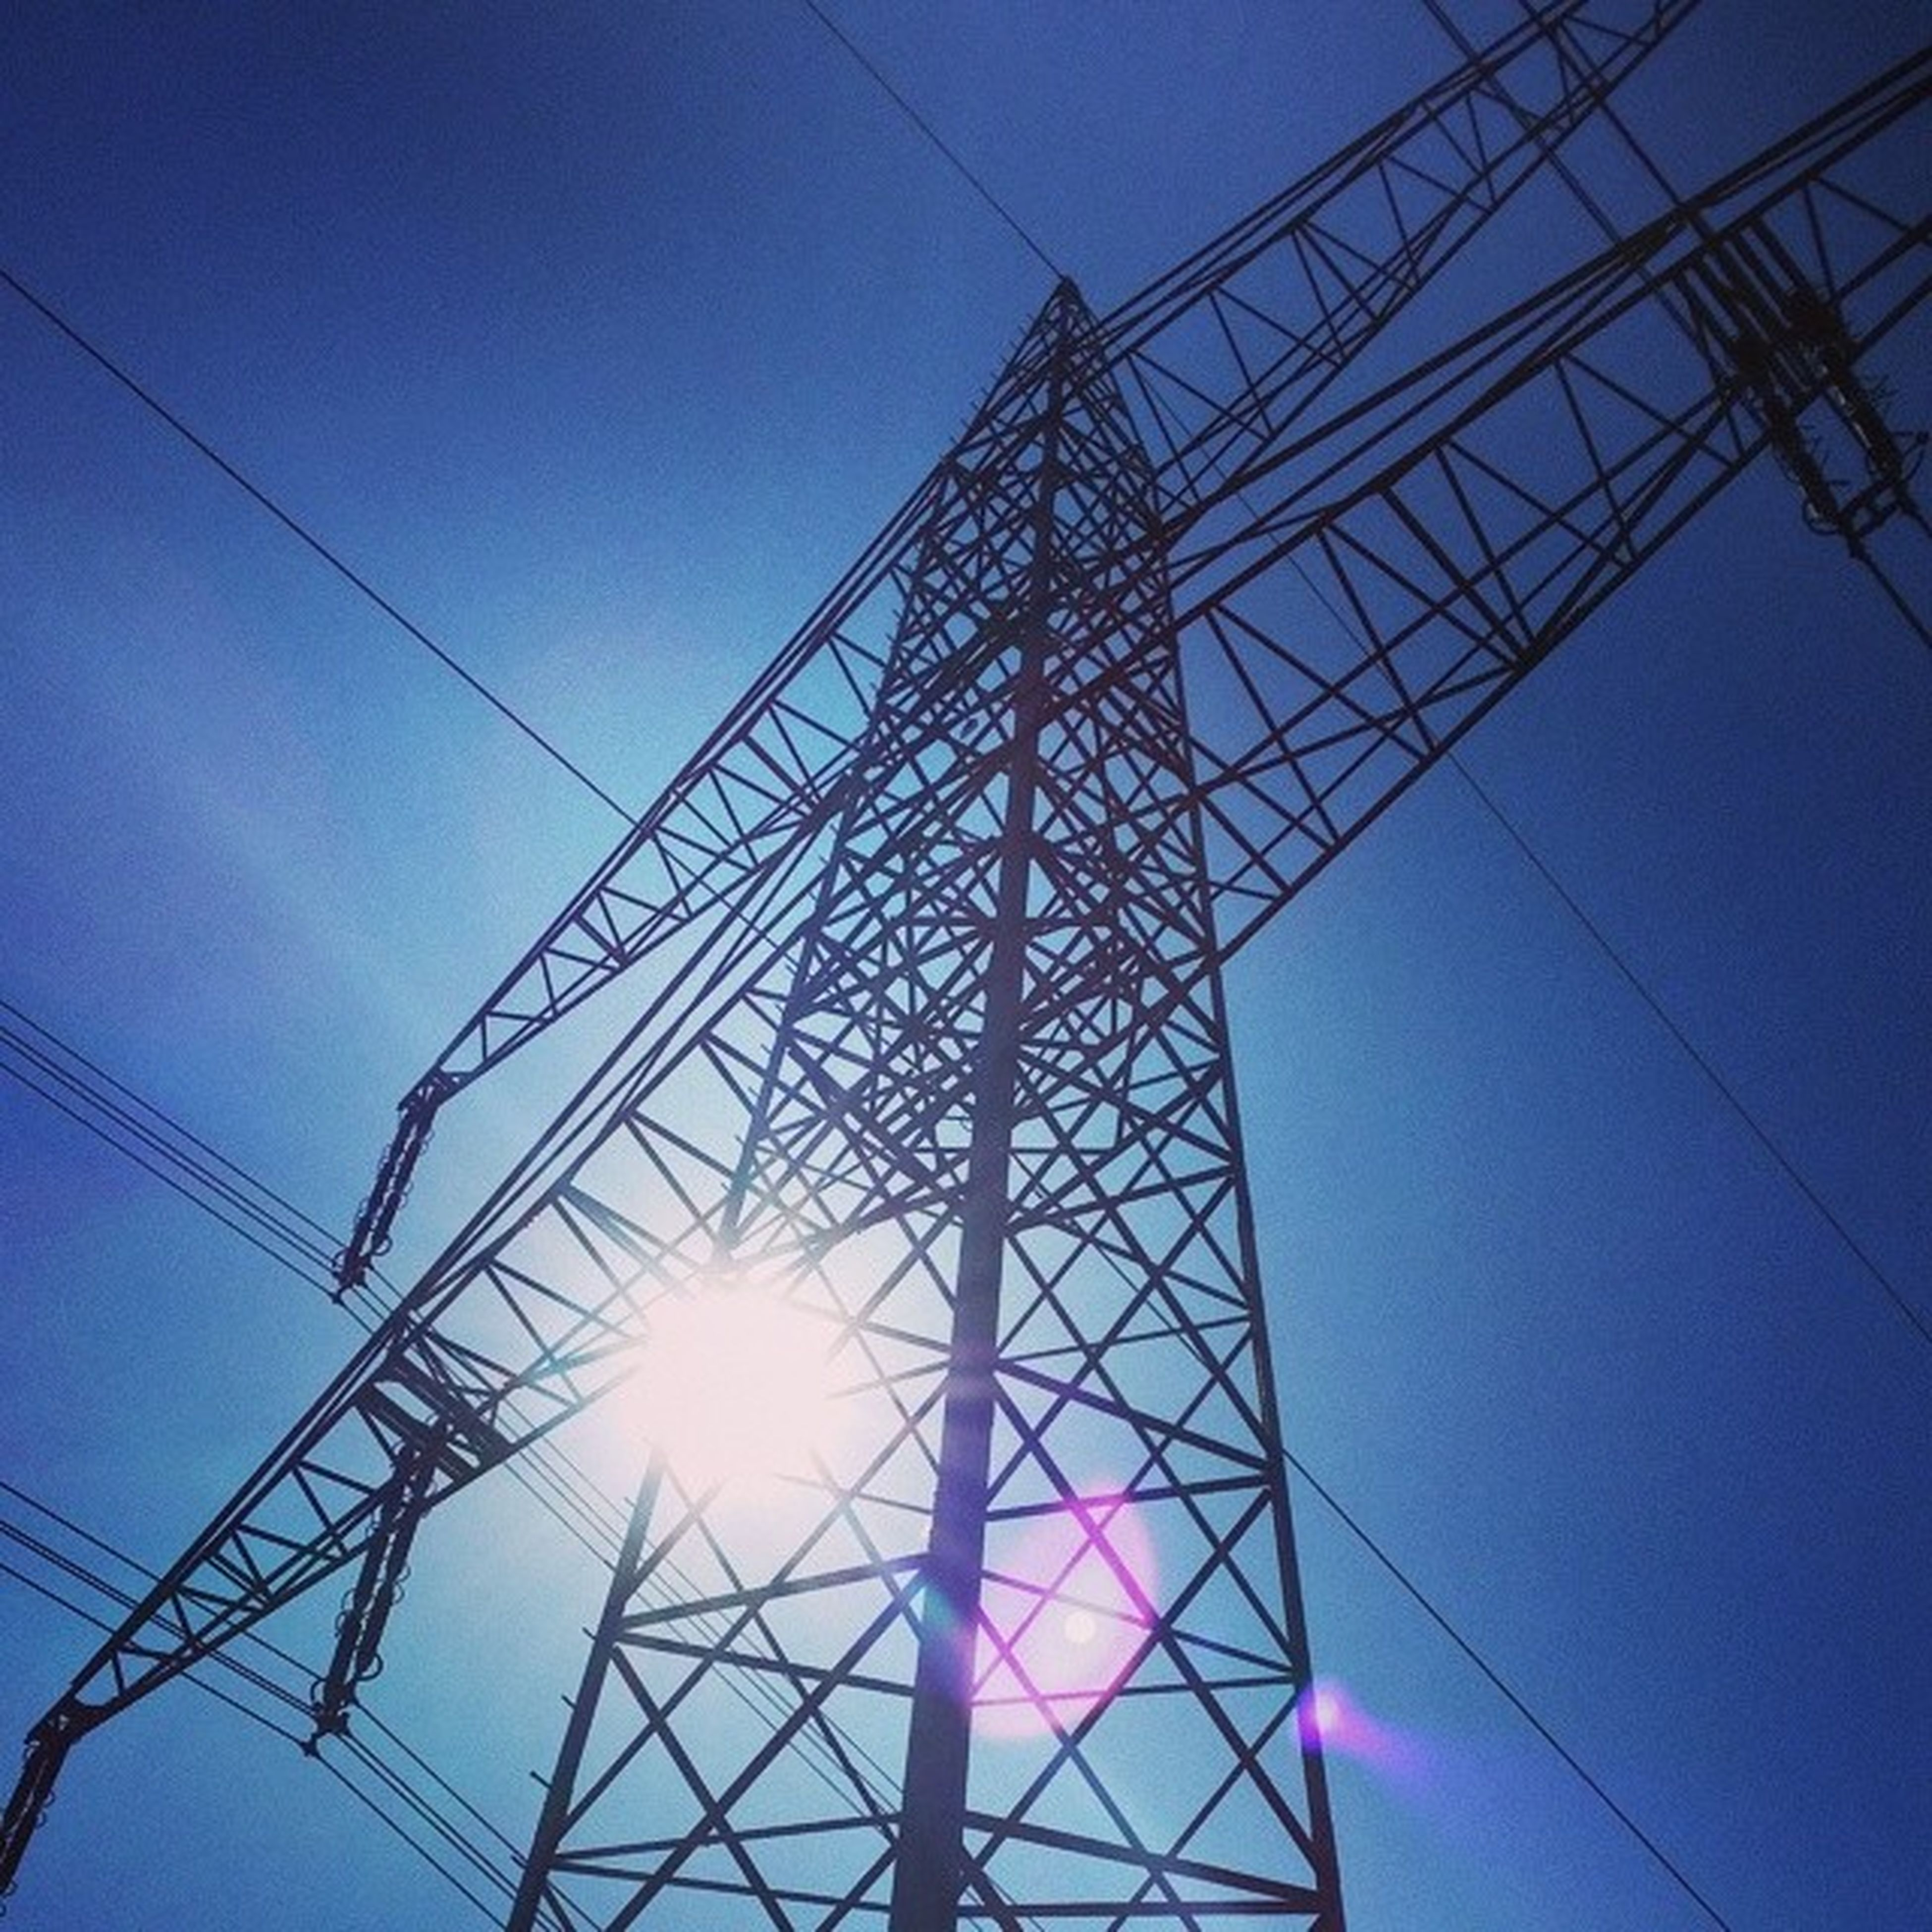 low angle view, power line, electricity, electricity pylon, power supply, connection, fuel and power generation, cable, technology, blue, sky, silhouette, power cable, complexity, sun, clear sky, sunlight, no people, outdoors, lighting equipment